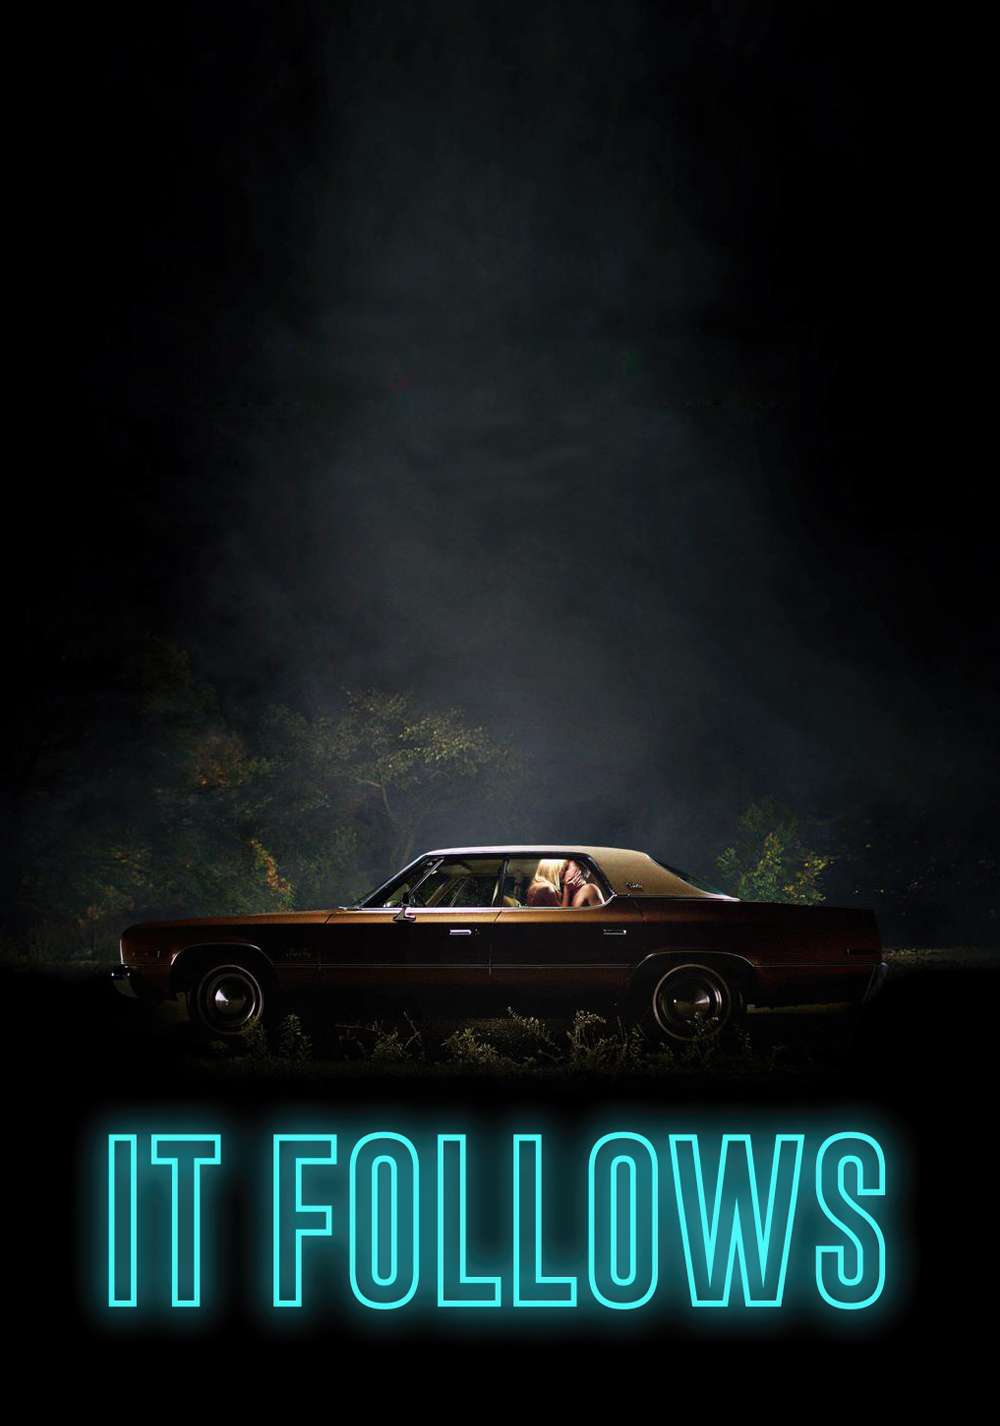 it-follows-uk-movie-poster